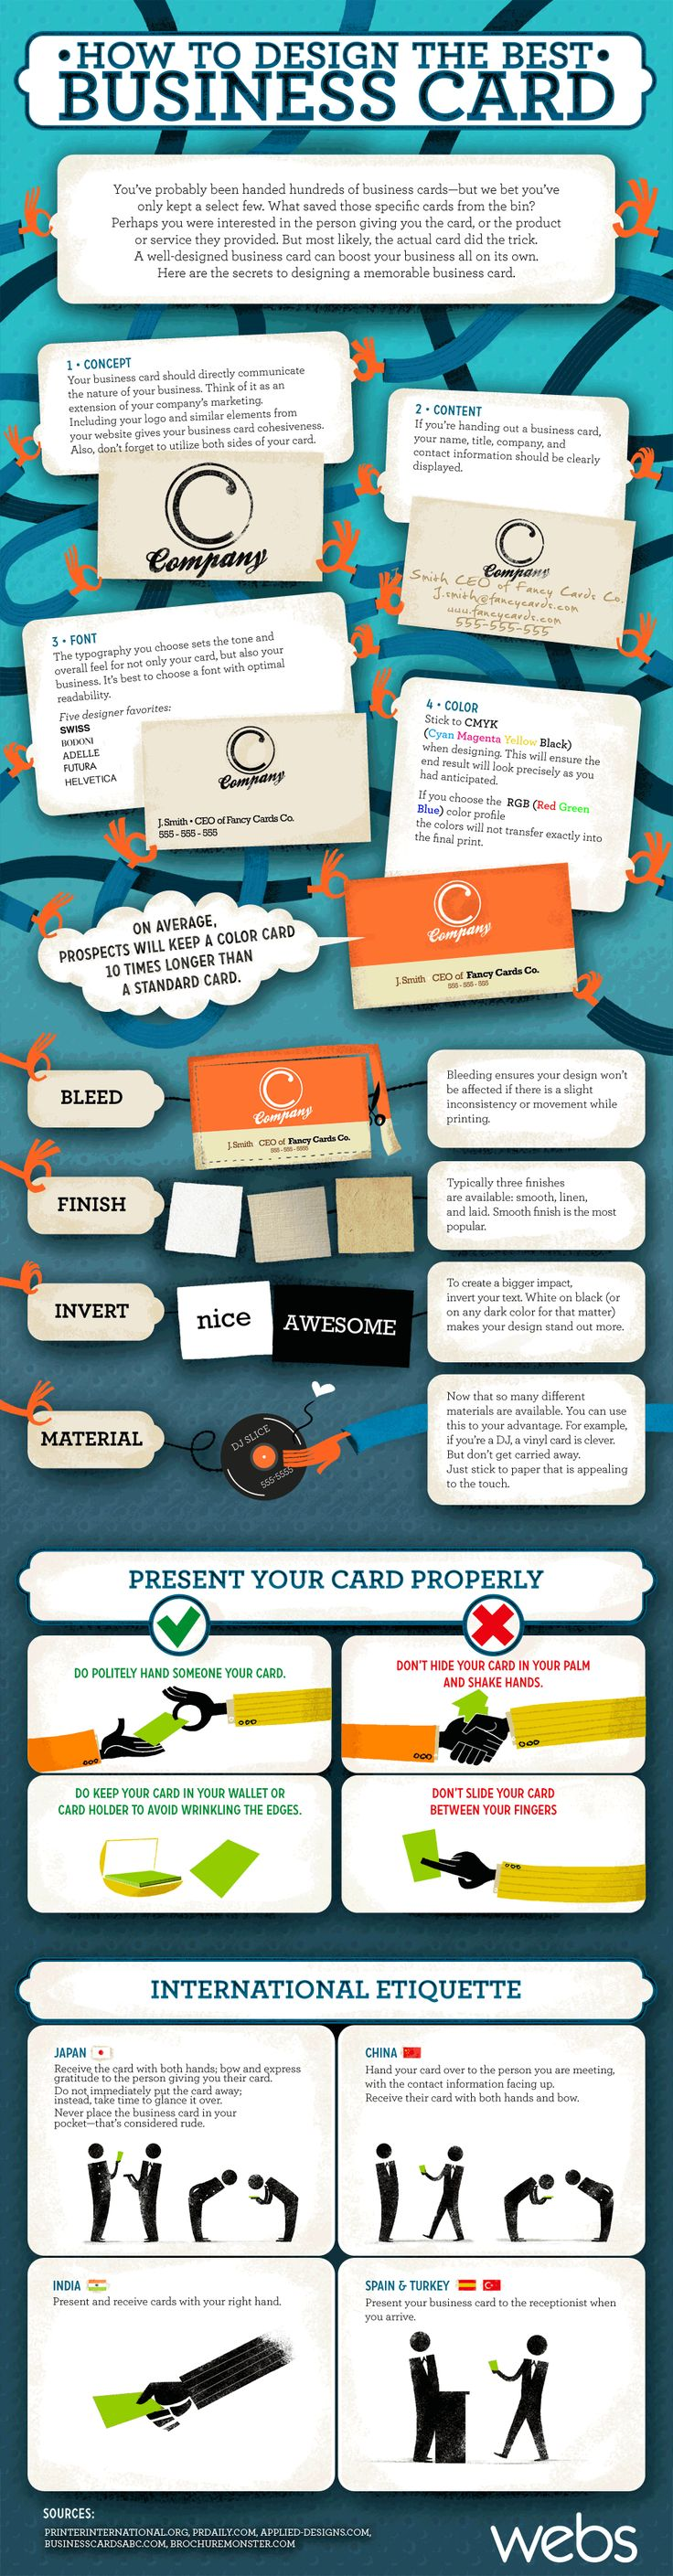 How To Design (and use) The Best Business Card